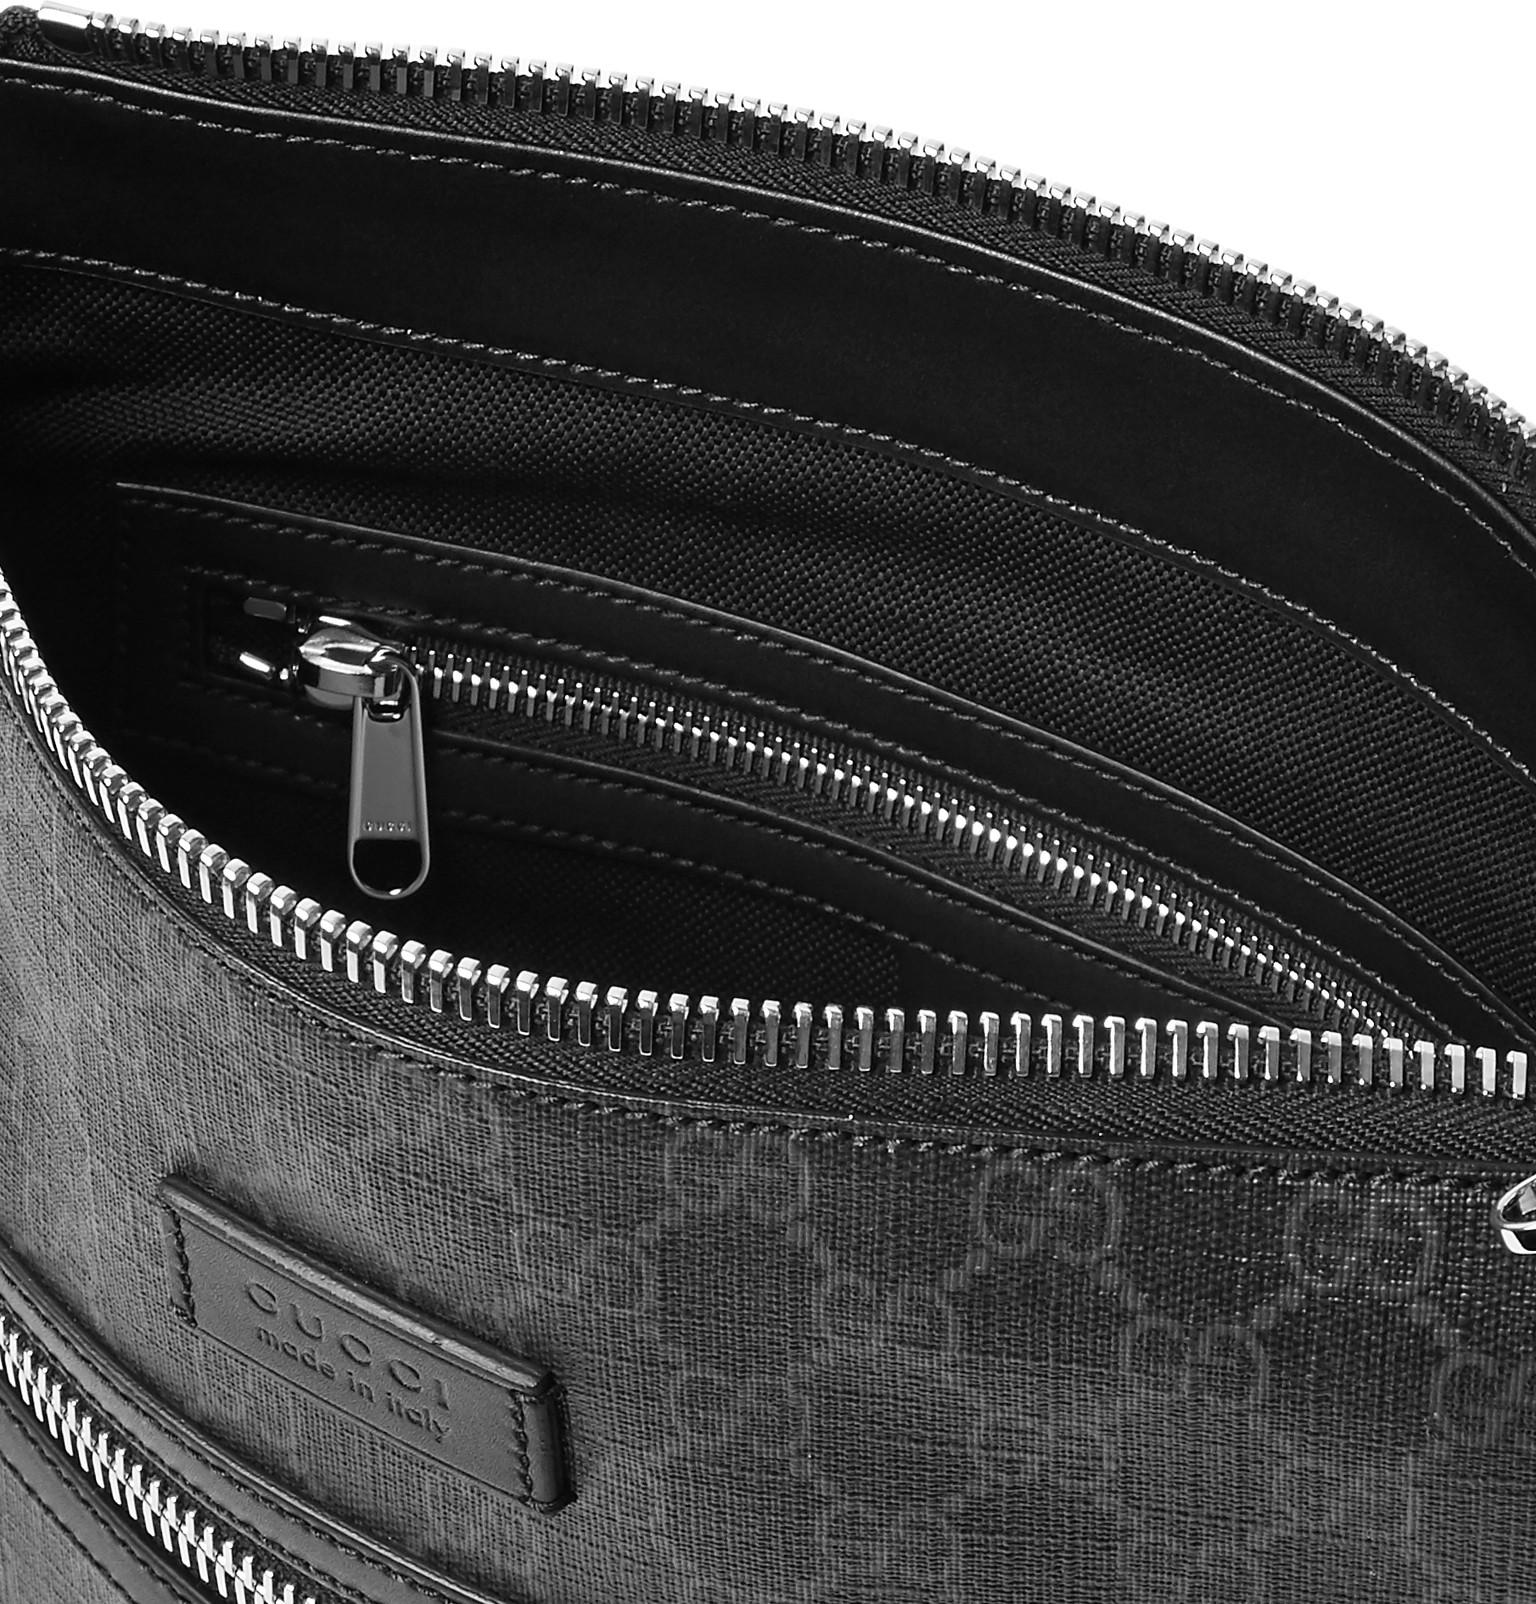 2ce2df06d88a Gucci - Black Leather-trimmed Monogrammed Coated-canvas Messenger Bag for  Men - Lyst. View fullscreen